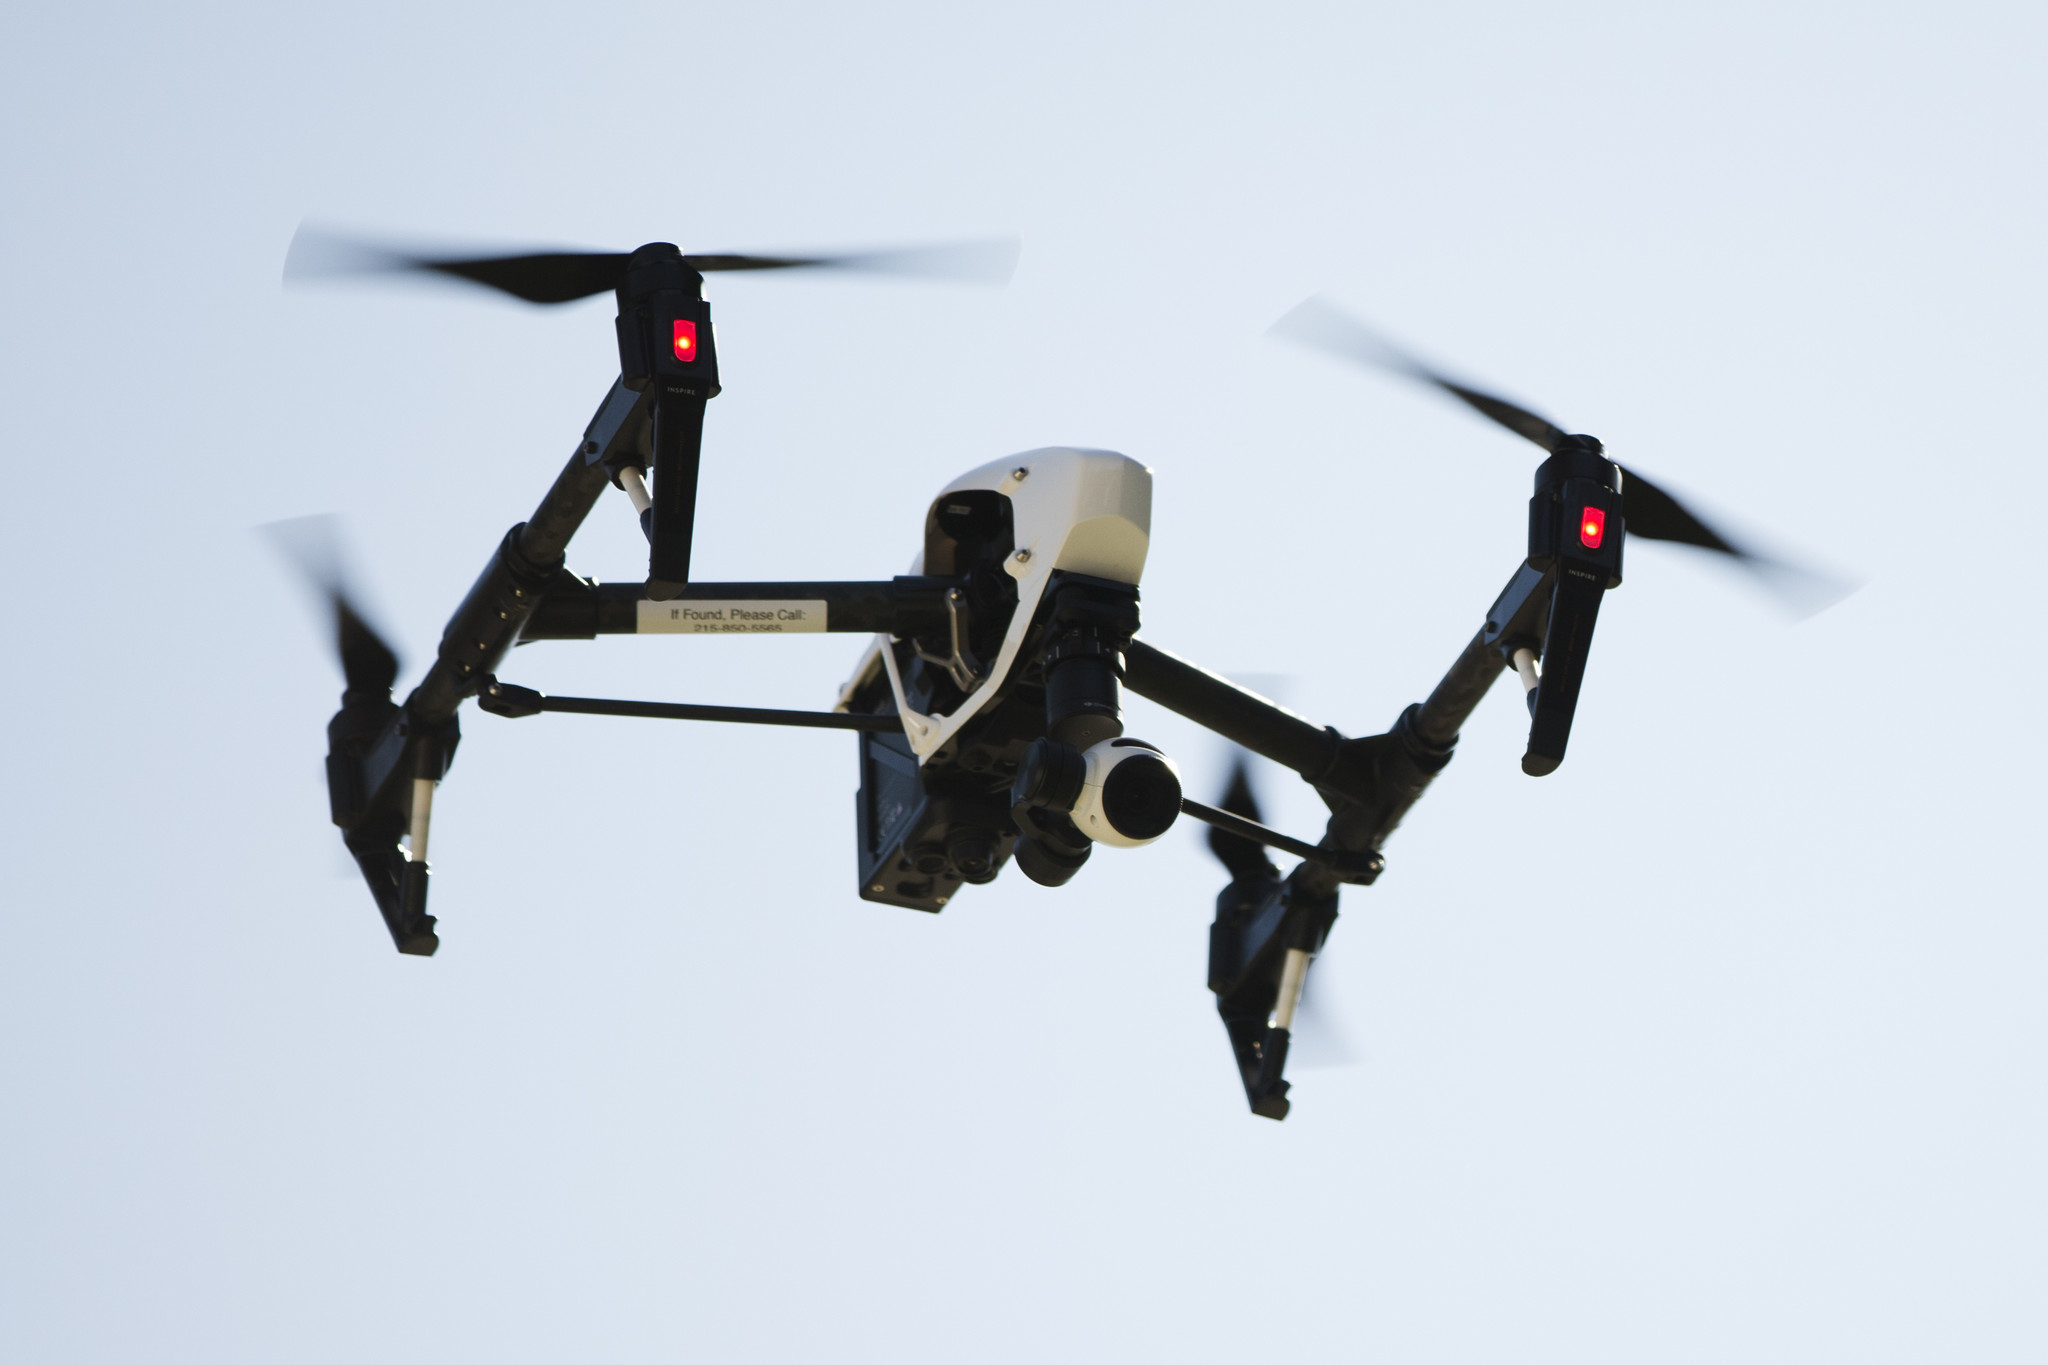 Image Result For What Drones Have To Be Registered With The Faa